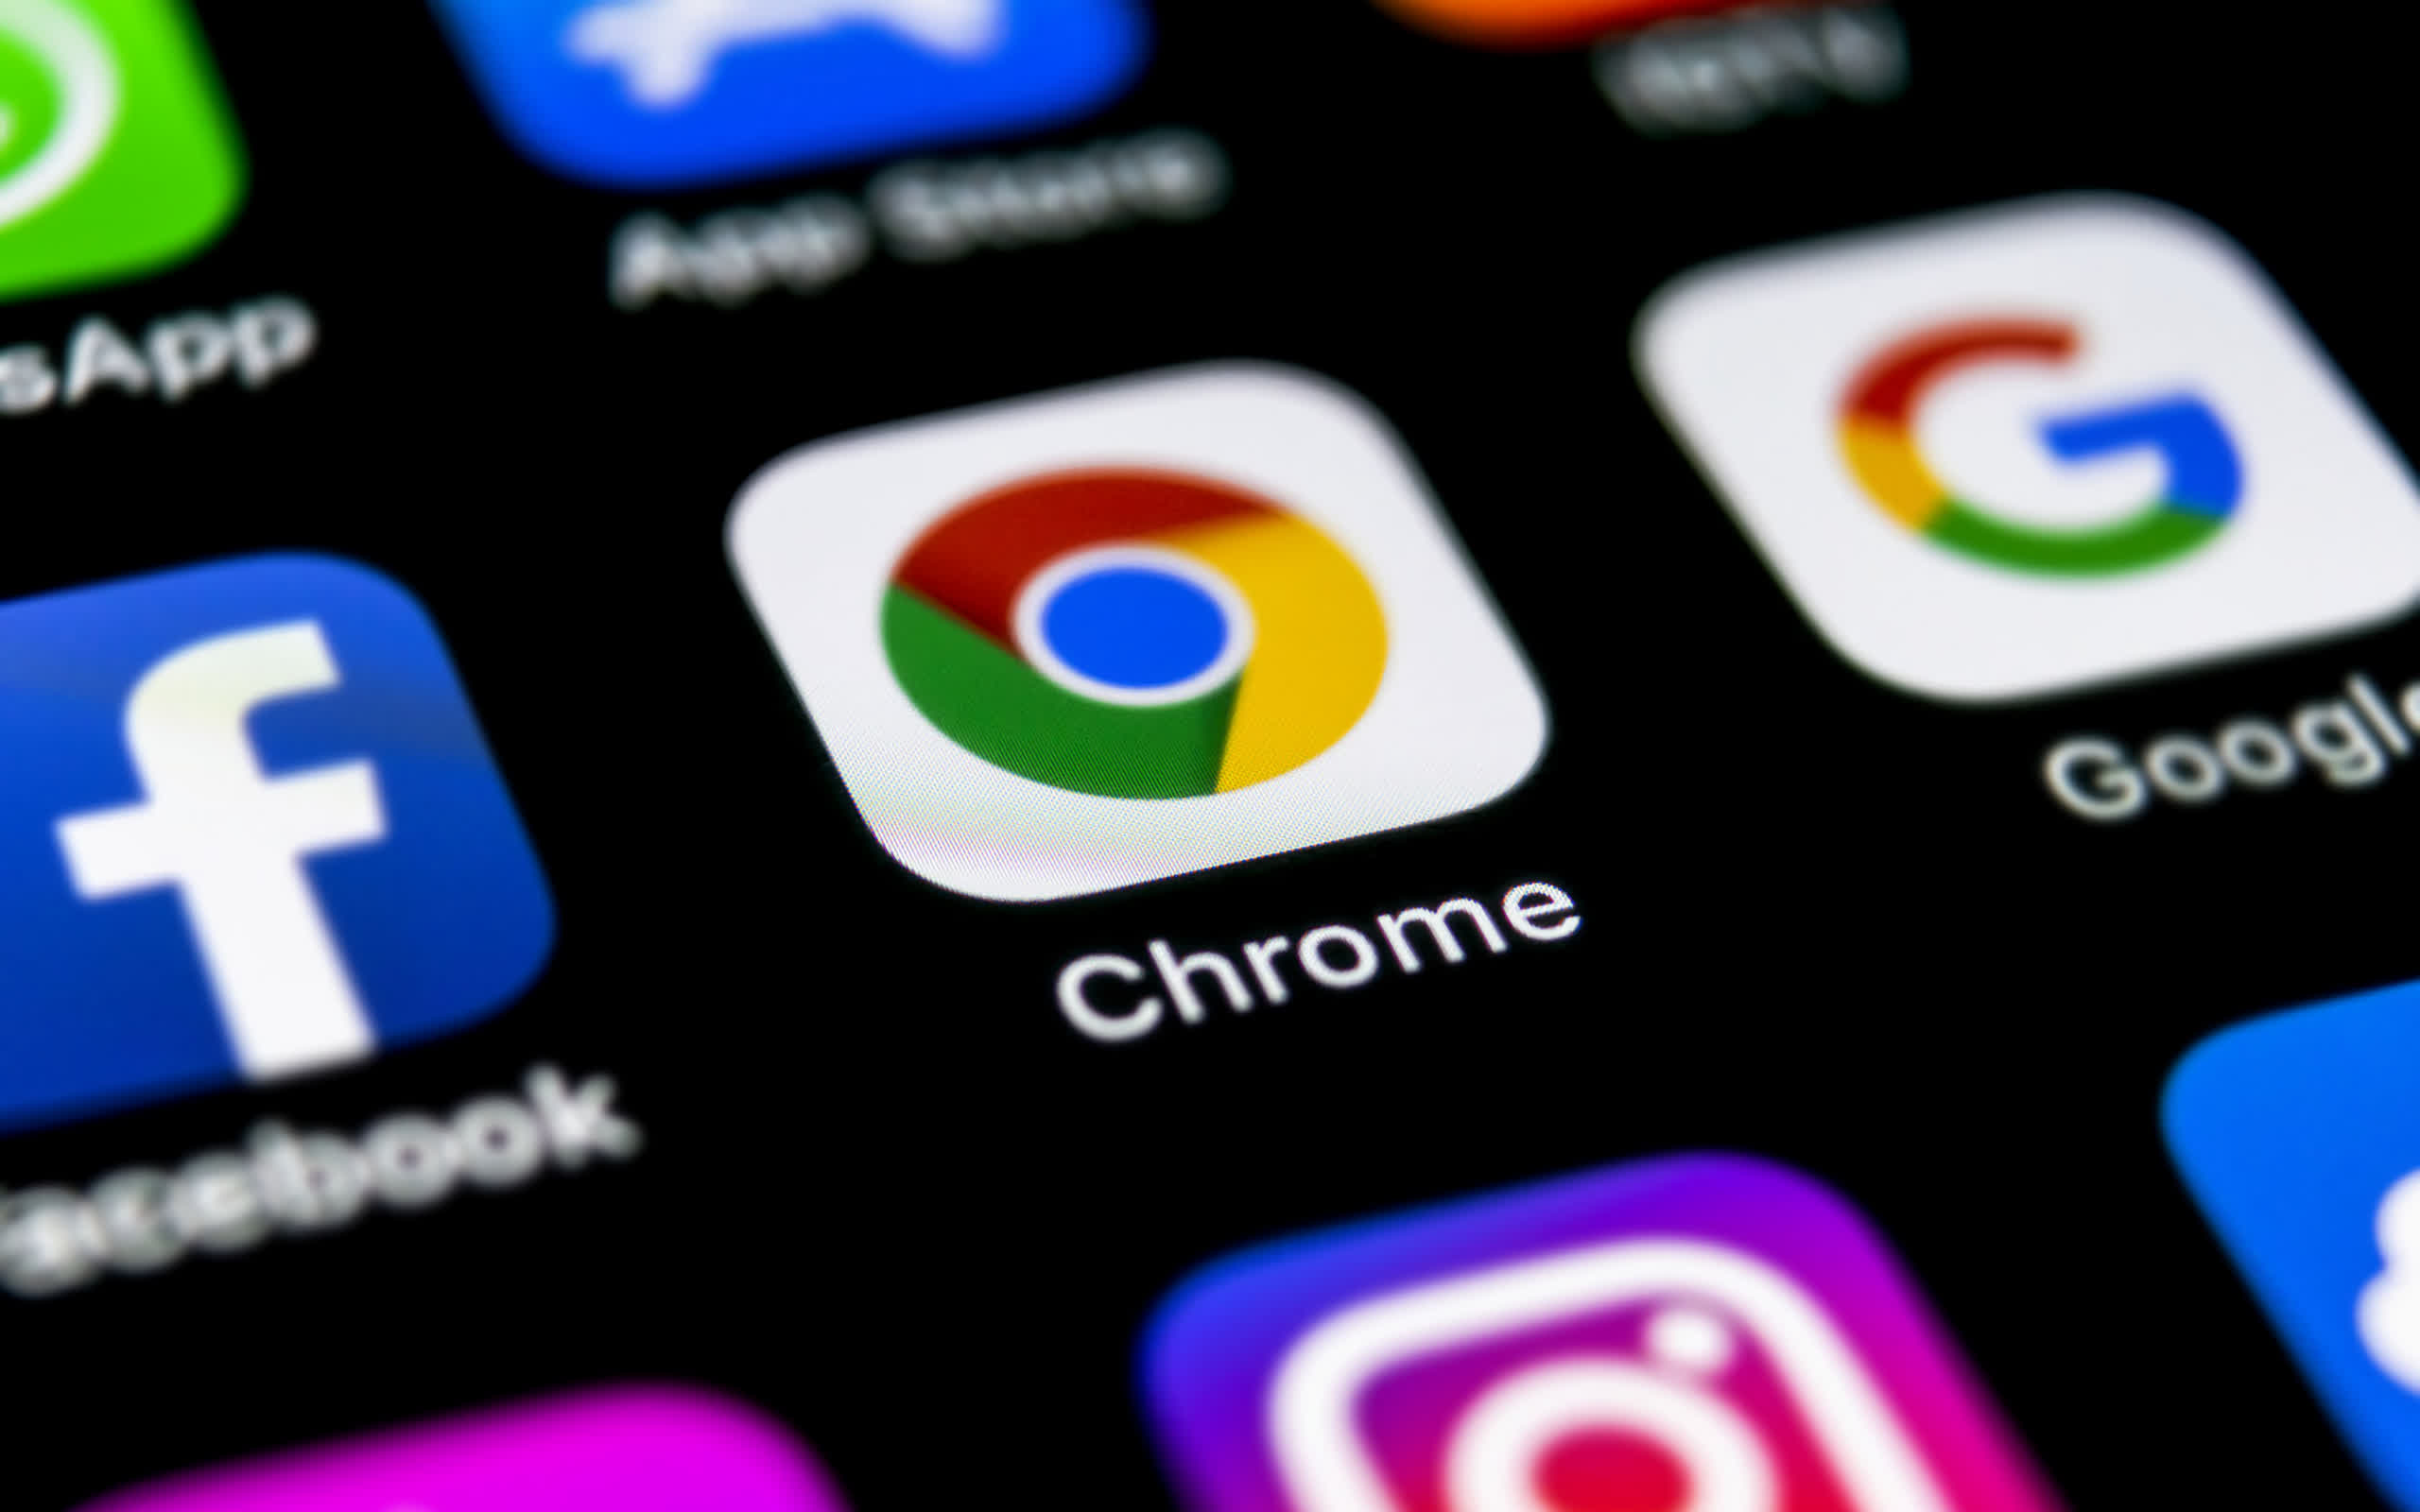 Chrome 87 claims to drastically reduce CPU usage and increase battery life